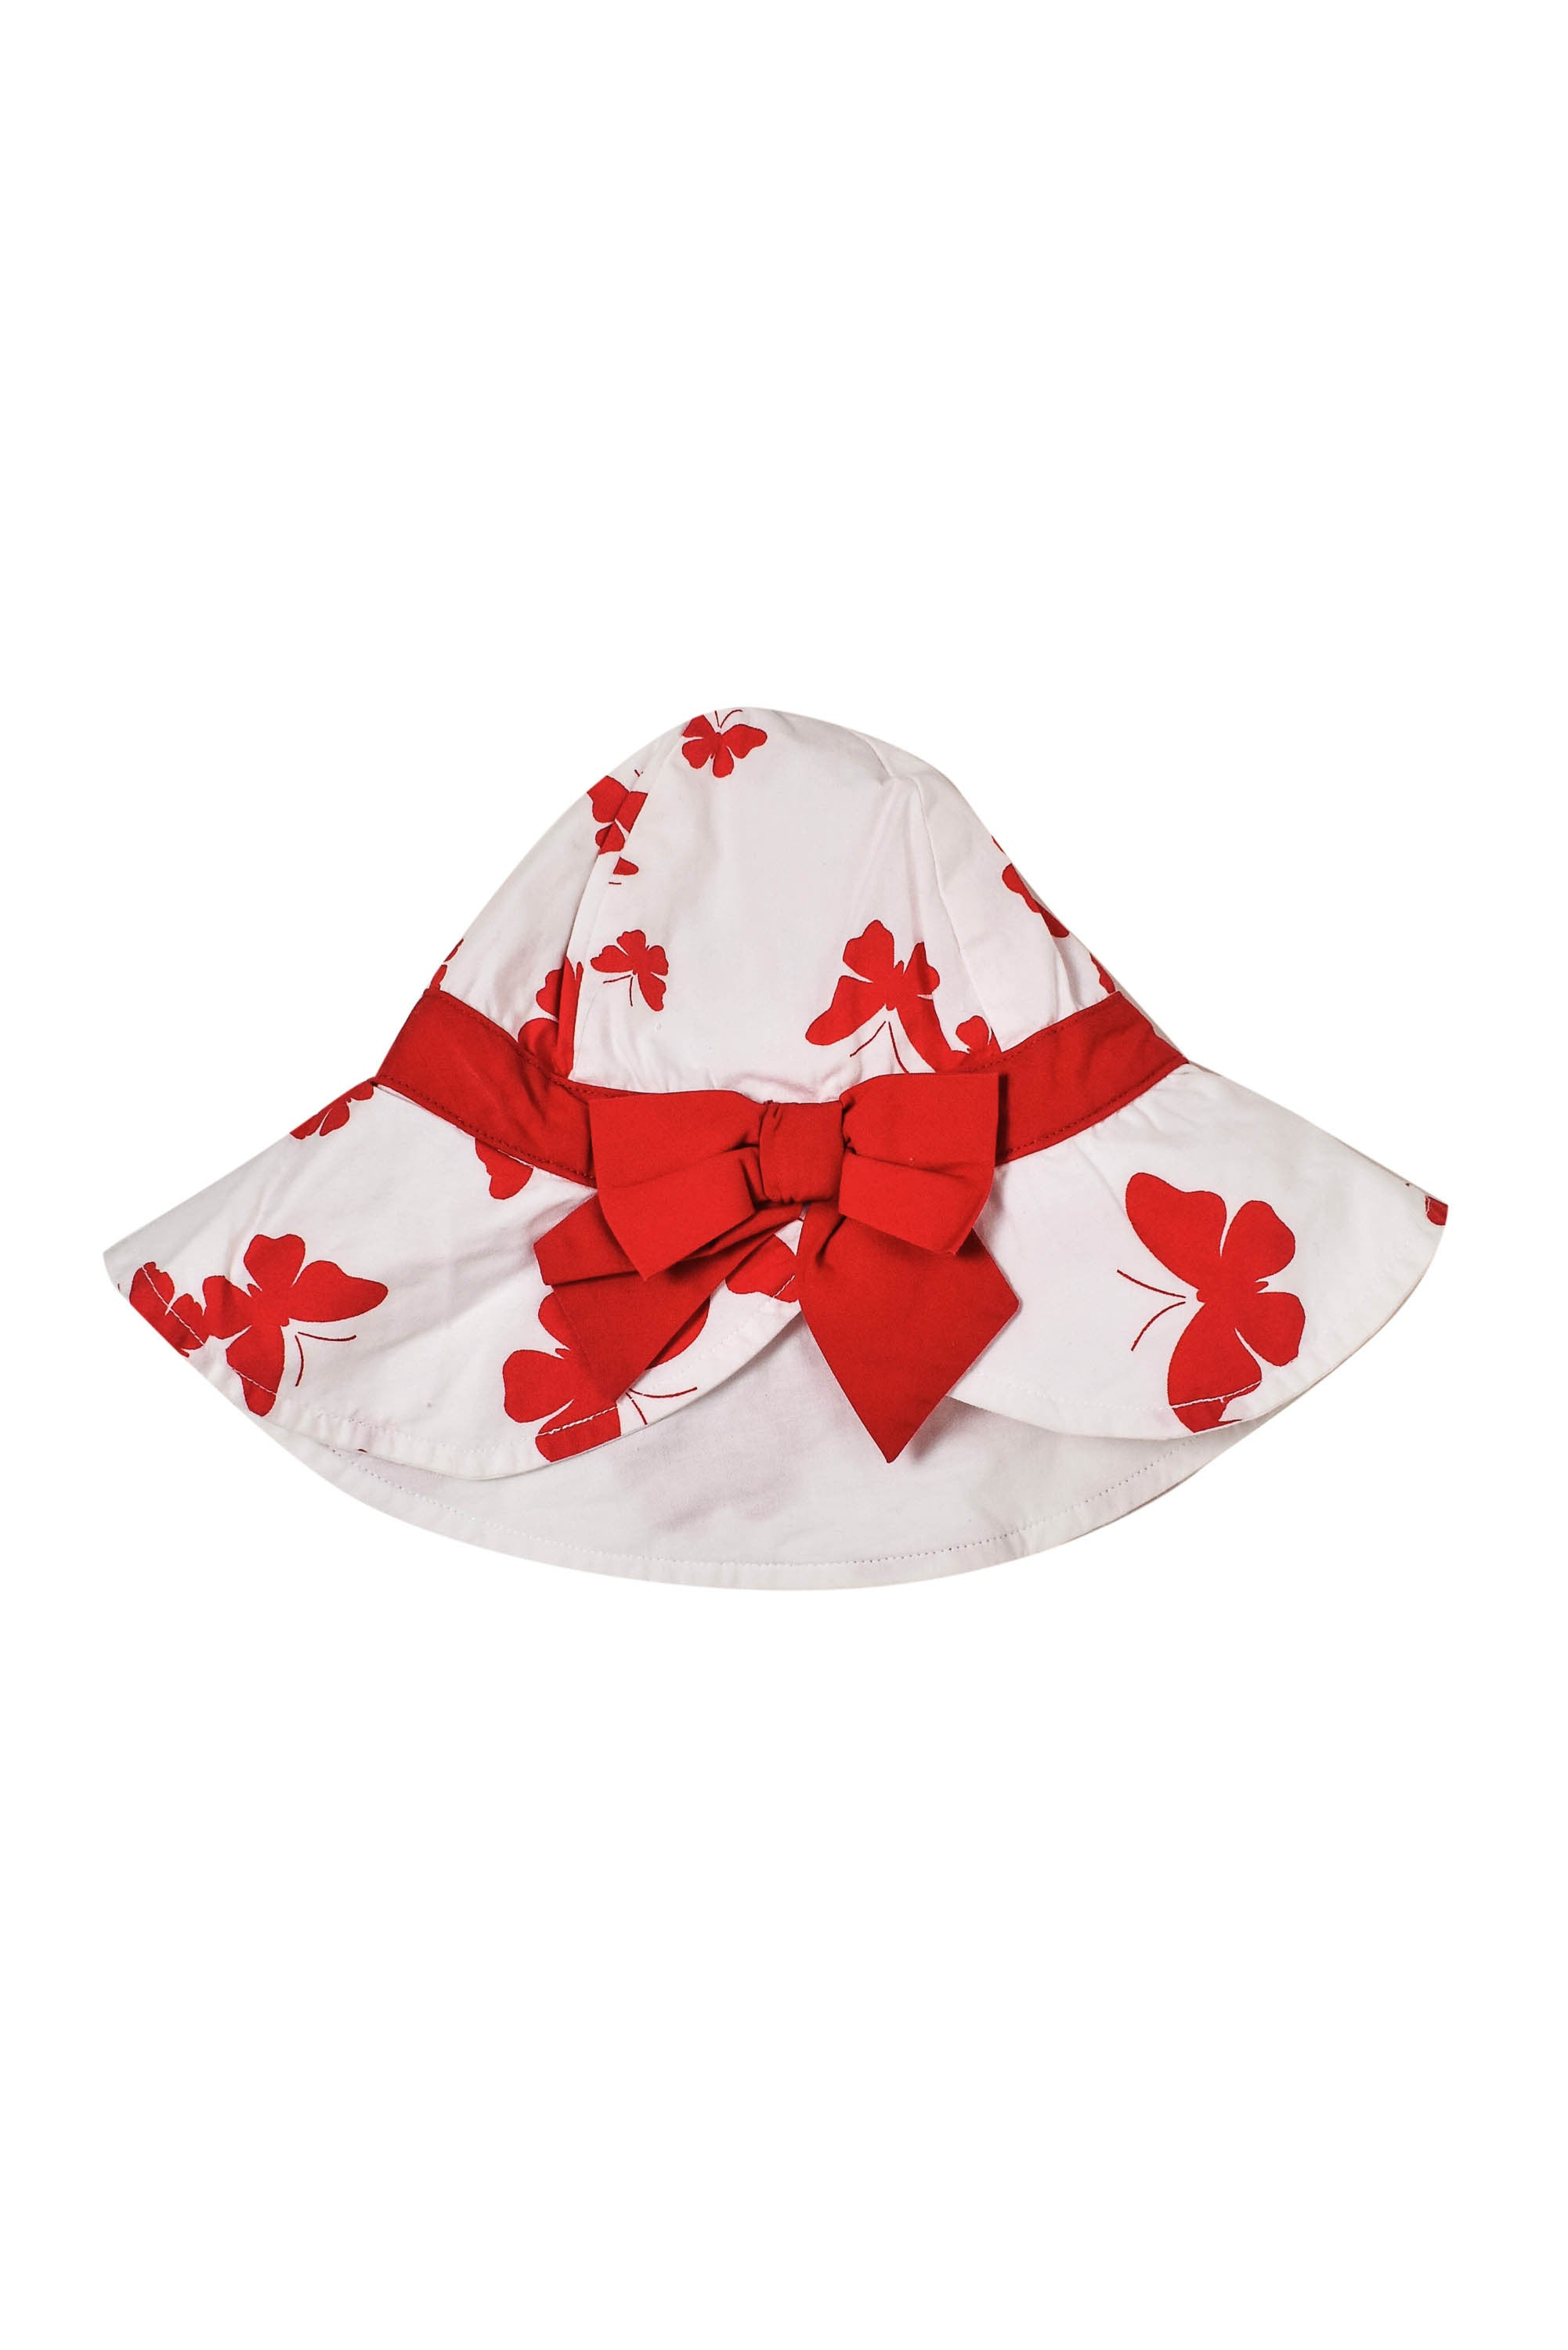 923d3d72acb57 10004174 Janie   Jack Baby~Hat 6-12M at Retykle